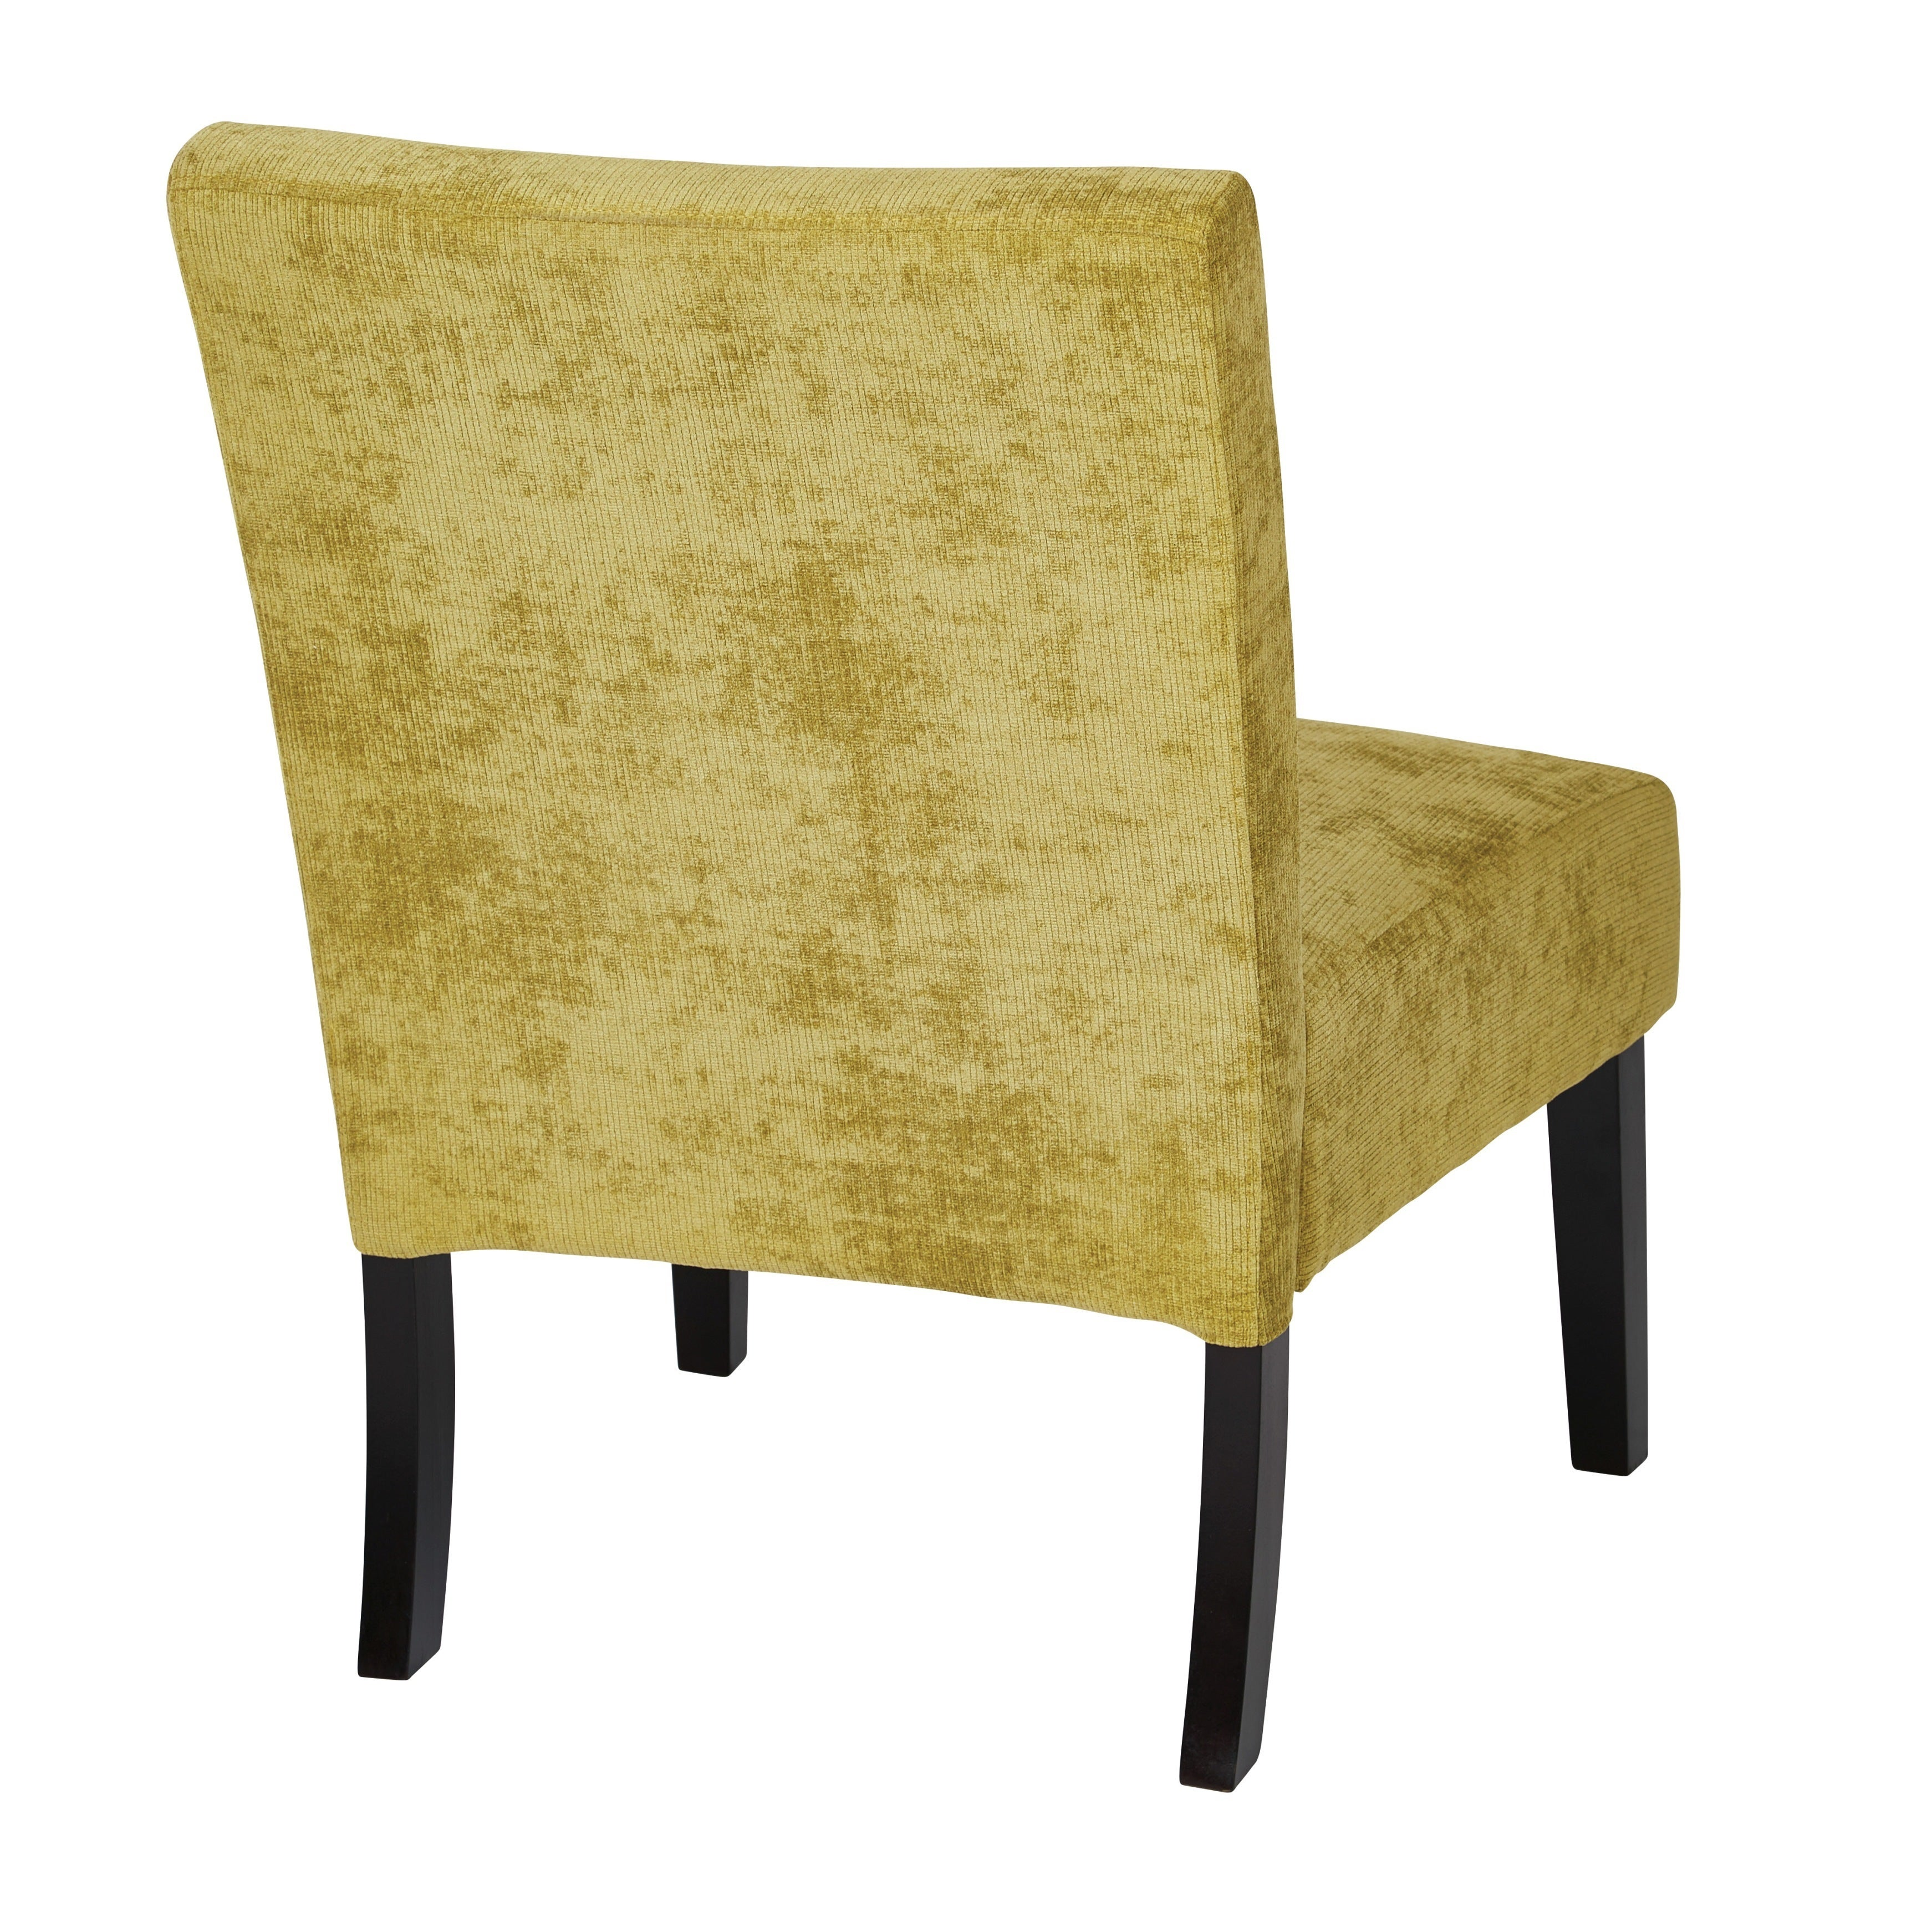 Beau Shop Verona Accent Chair With Solid Wood Legs   Free Shipping Today    Overstock.com   10676739